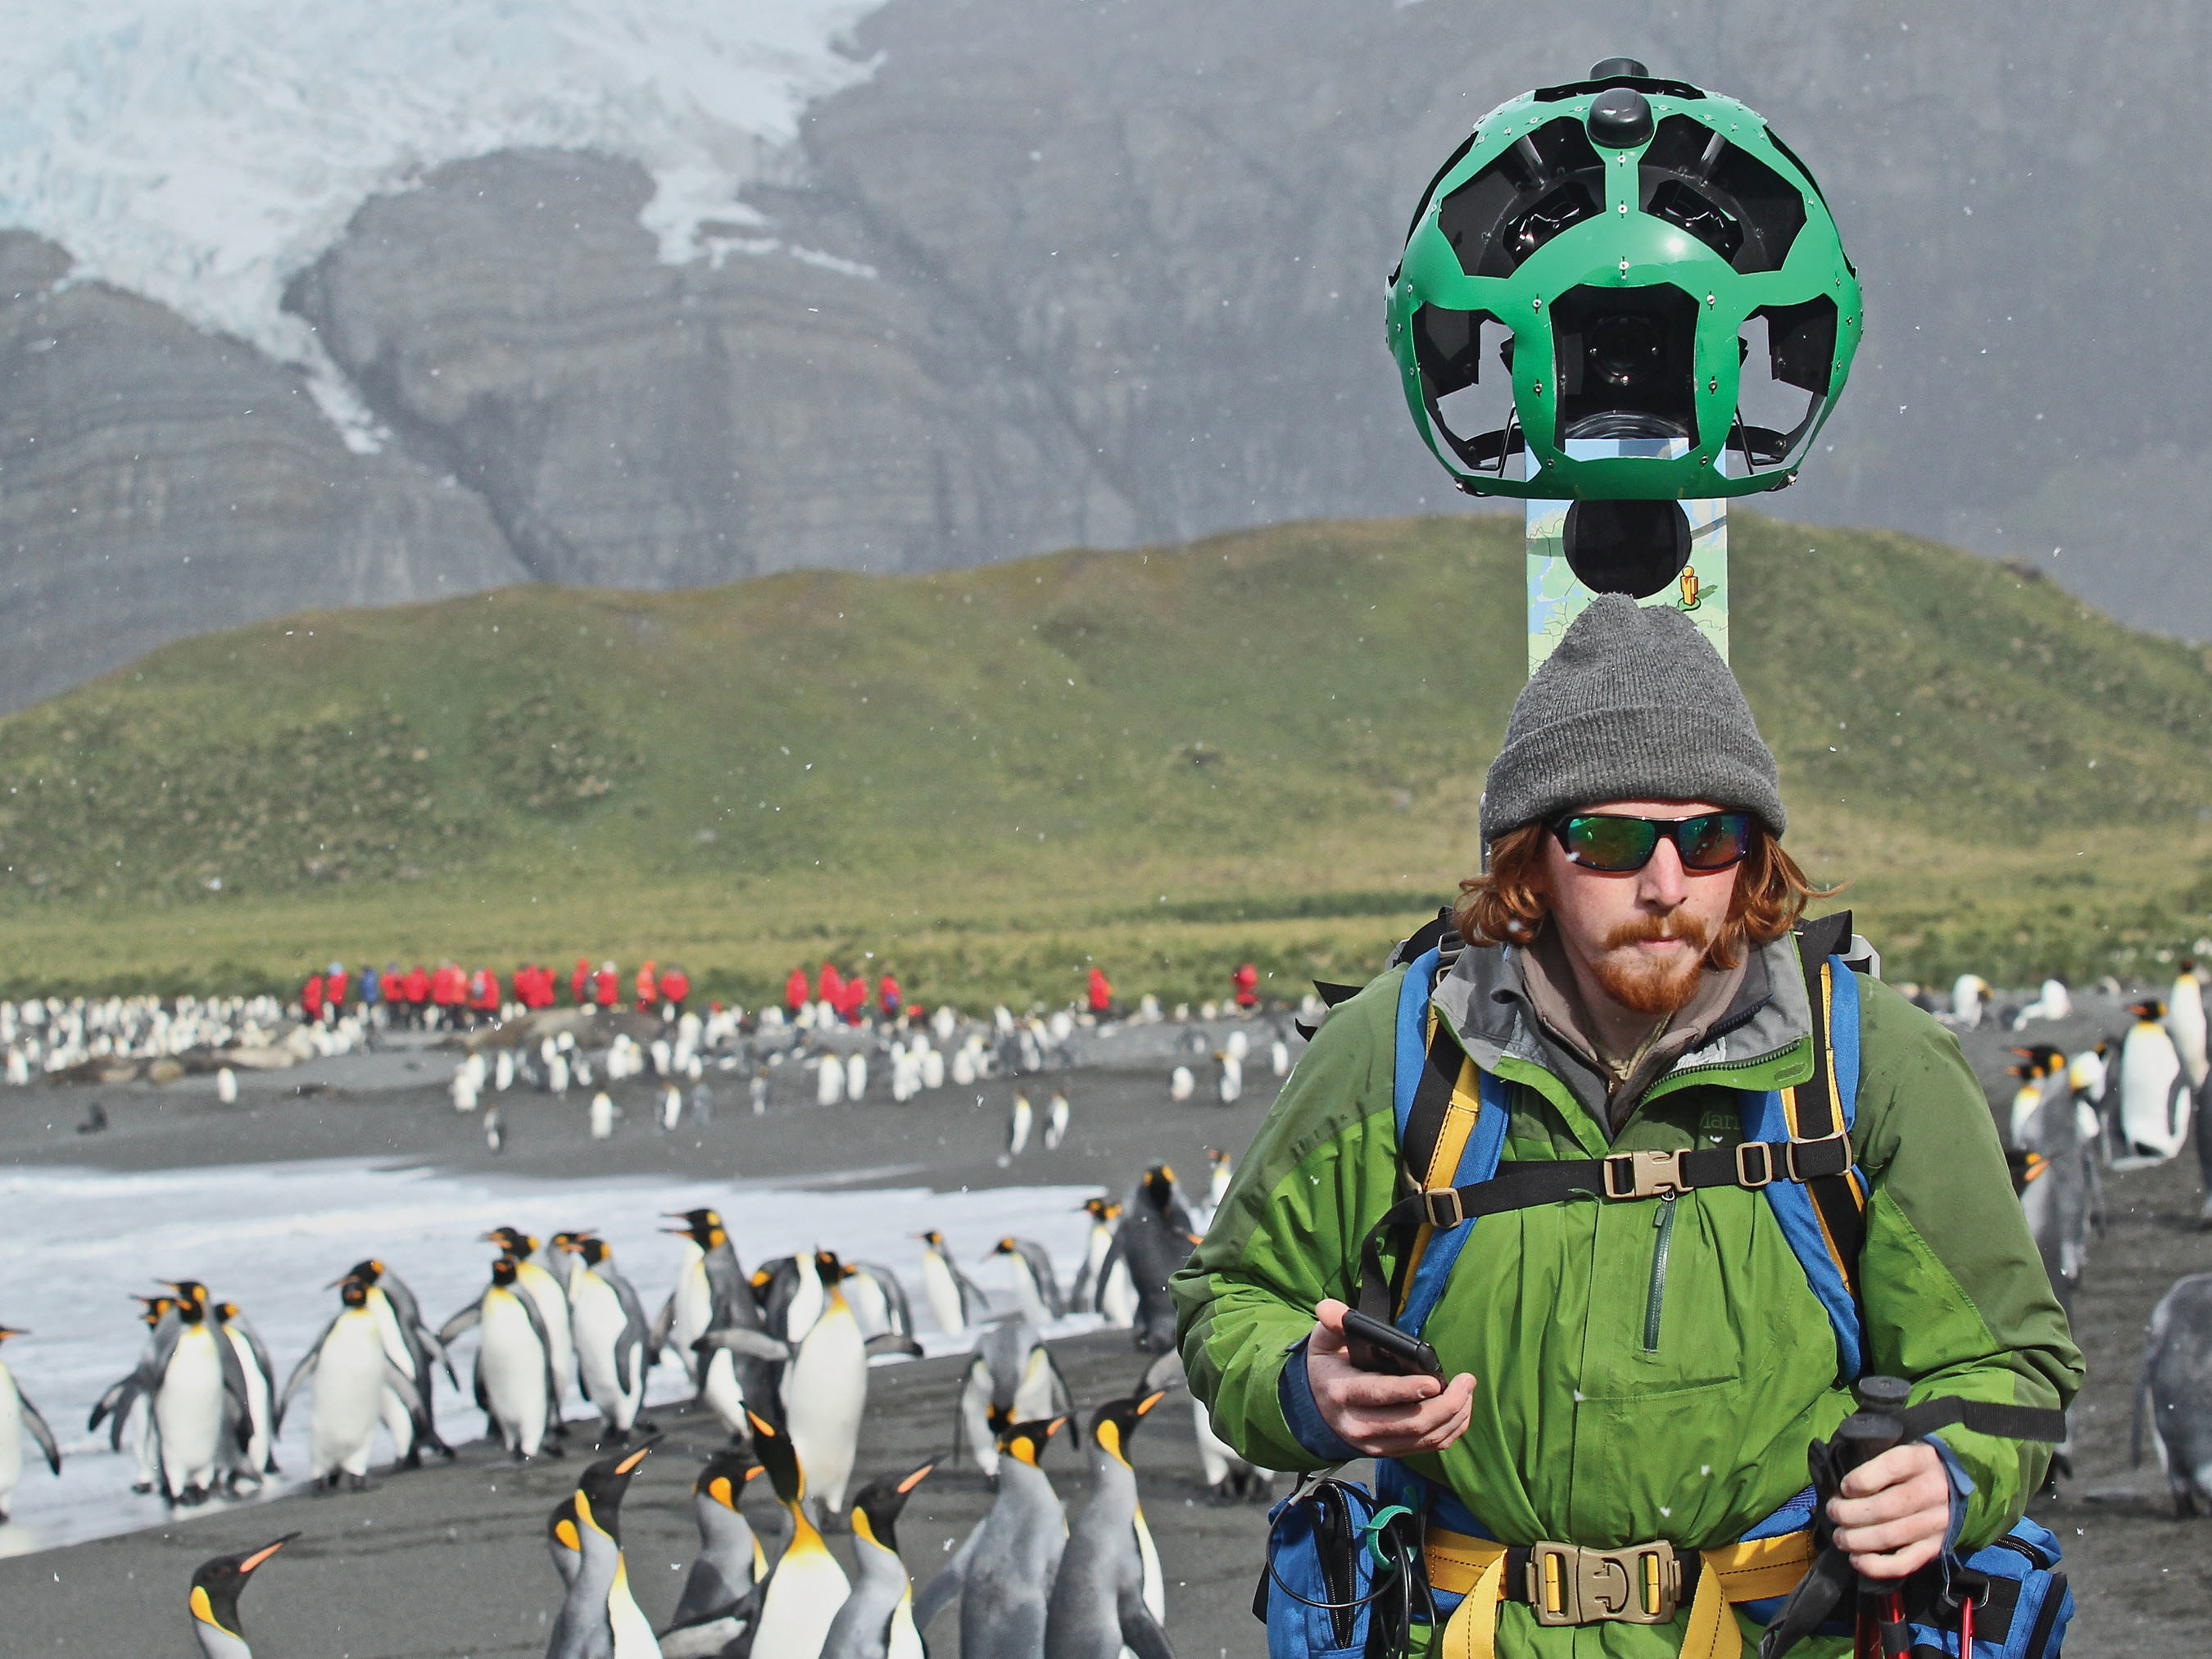 Penguins, walrus, and ice - oh my!  Lindblad Expeditions-National Geographic & Google Street View launched Imagery of South Georgia & the Falkland Islands collected on a Lindblad Expedition on board National Geographic Explorer. Pictured here, Lindblad Expeditions' videographer treks Right Whale Bay, South Georgia Island.